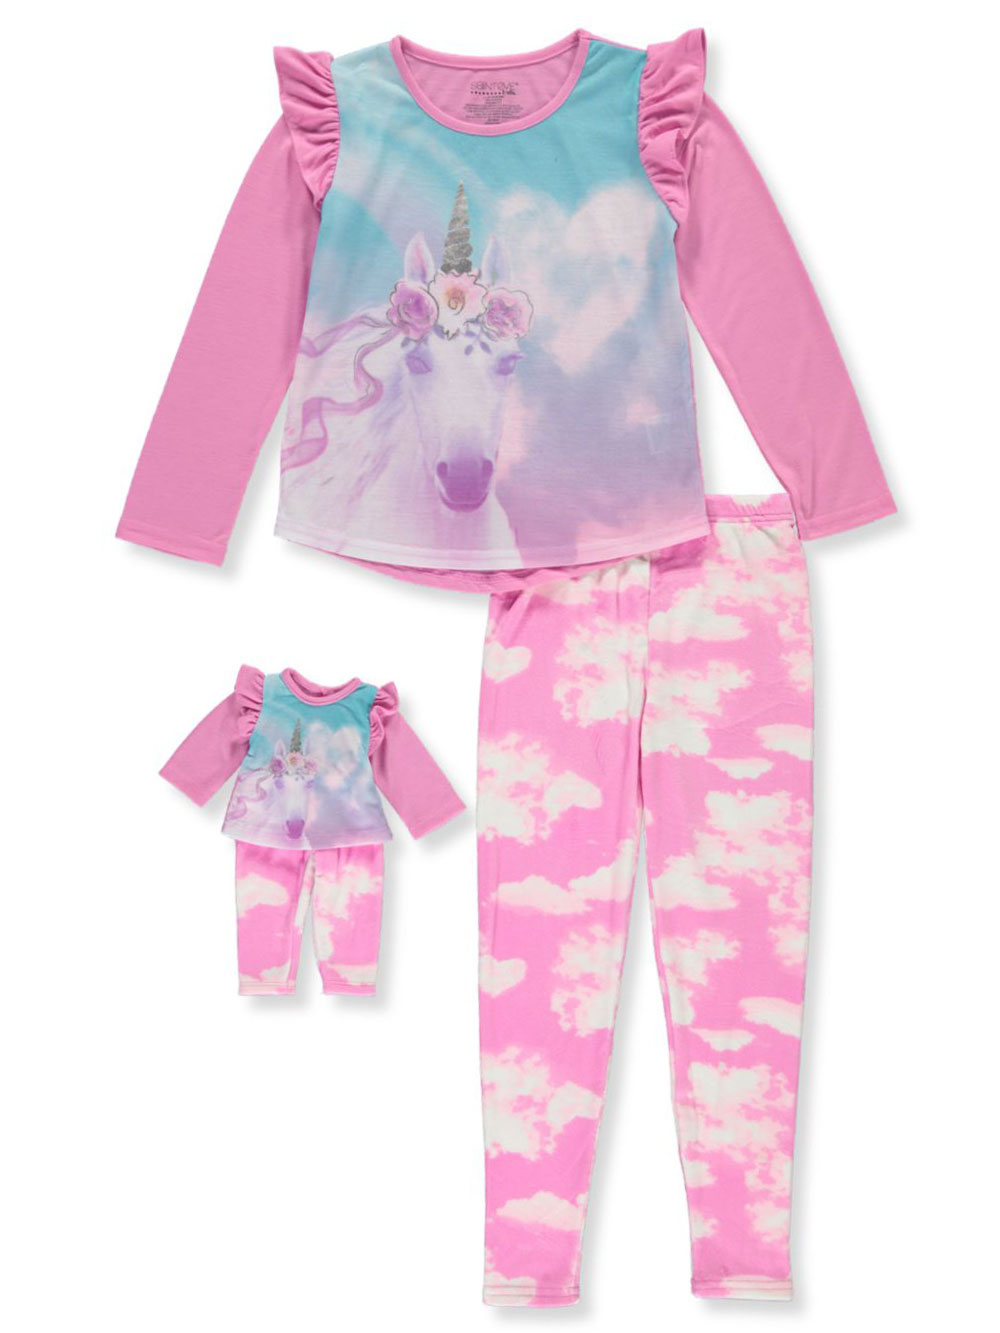 Pajamas Matching Doll